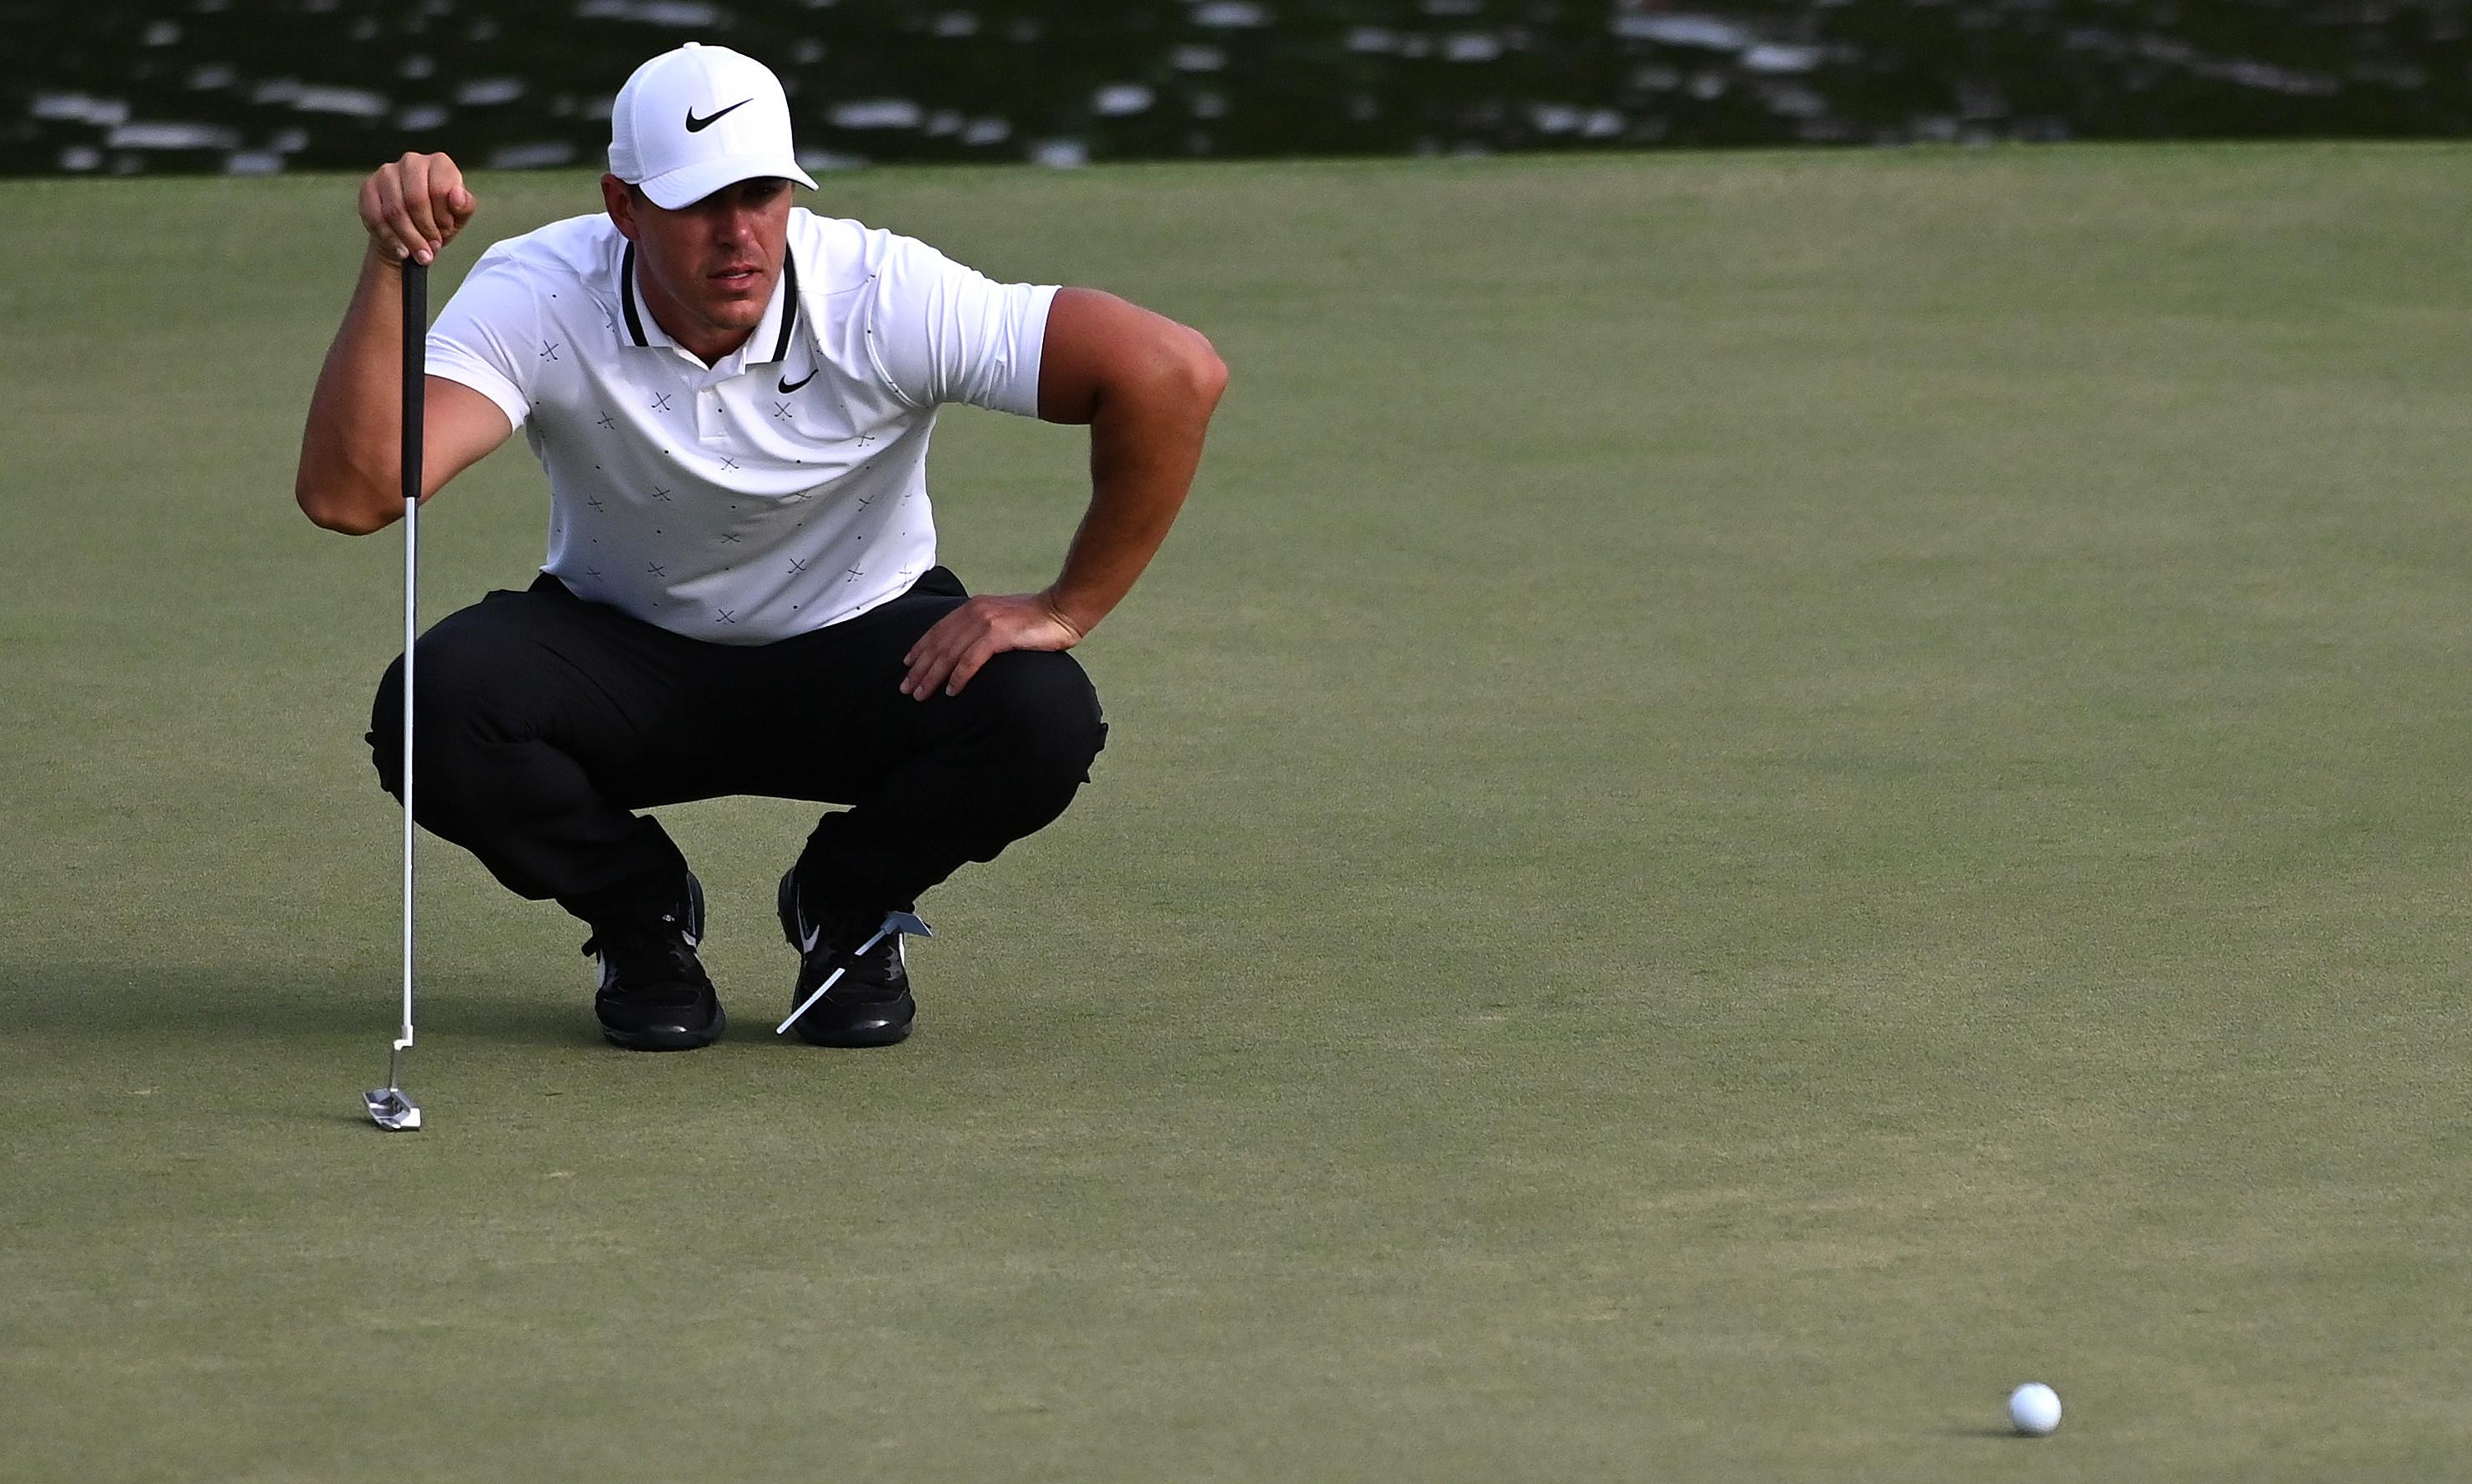 McIlroy and Thomas in close pursuit of Brooks Koepka at Tour Championship